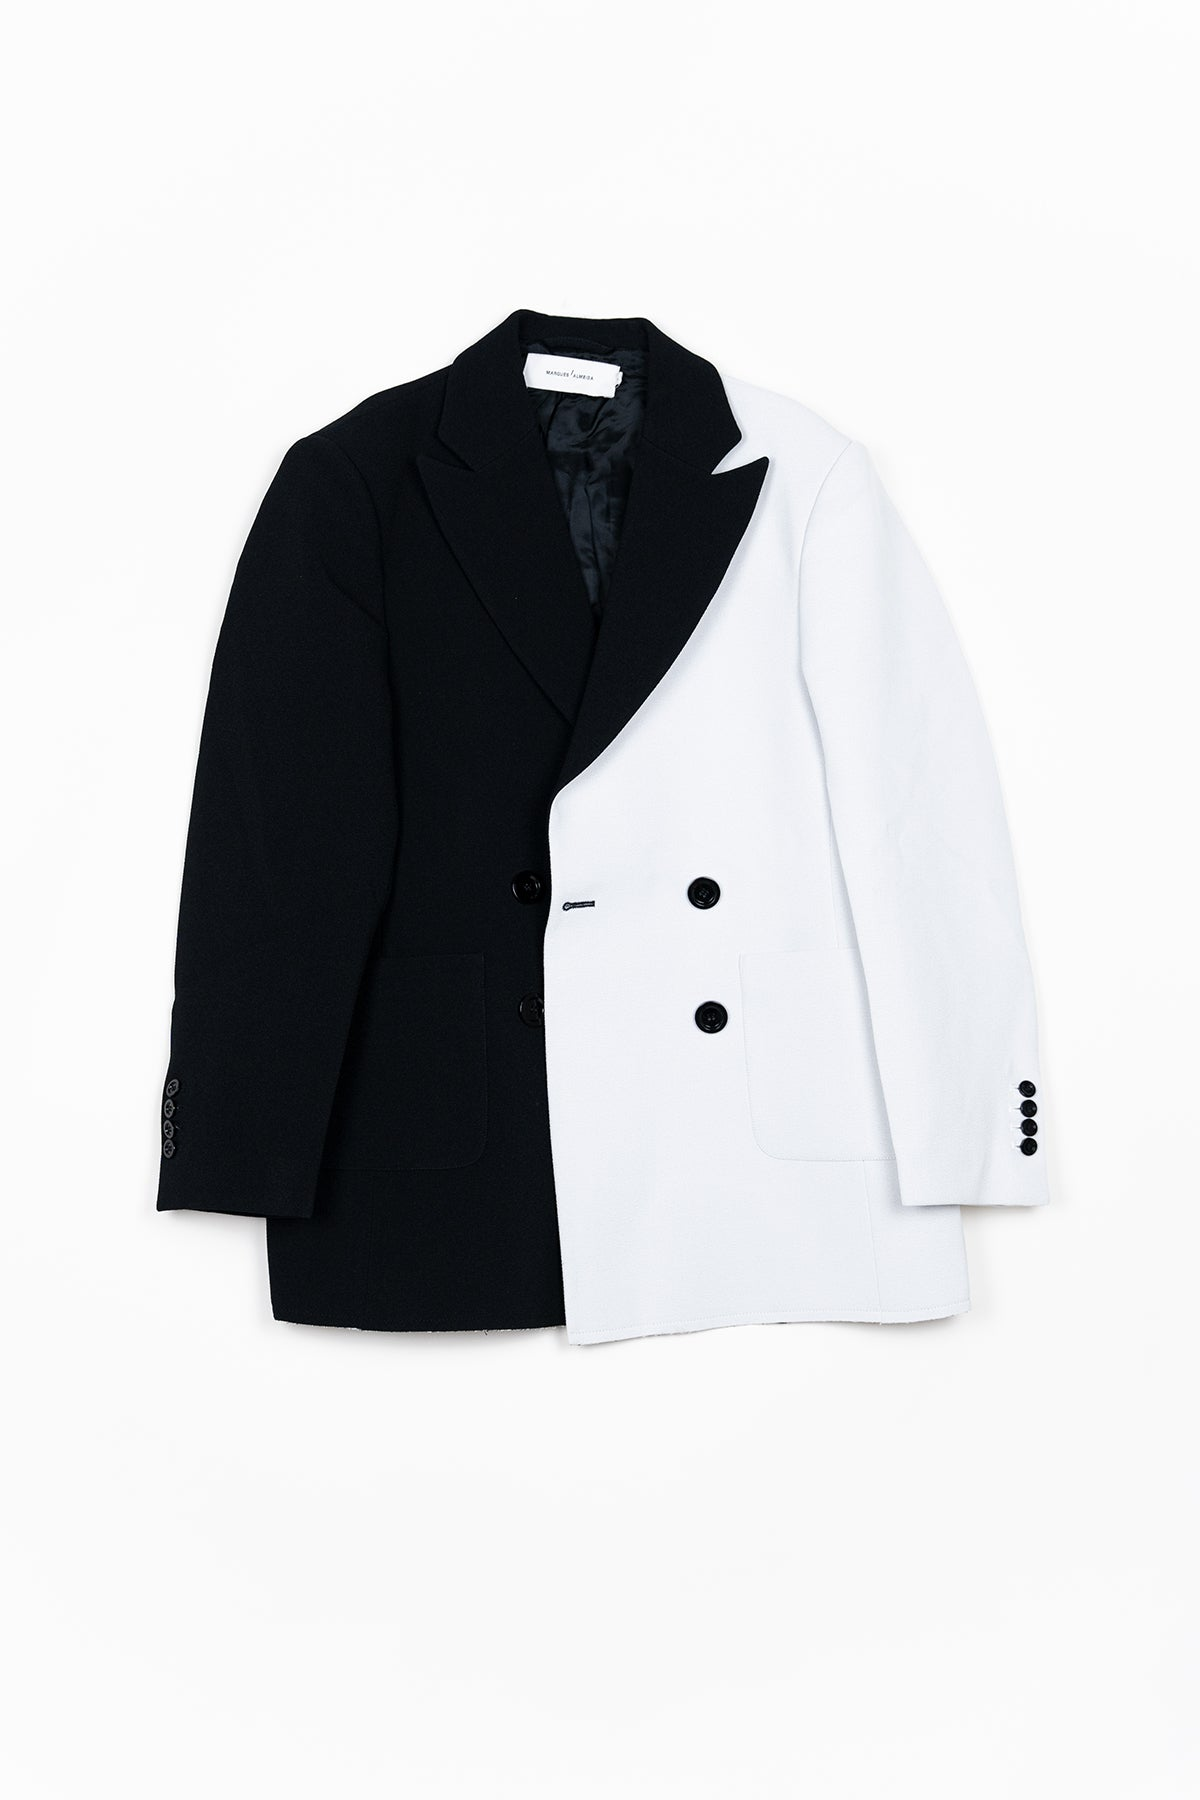 BLACK AND WHITE CREPE DOUBLE VENT BLAZER